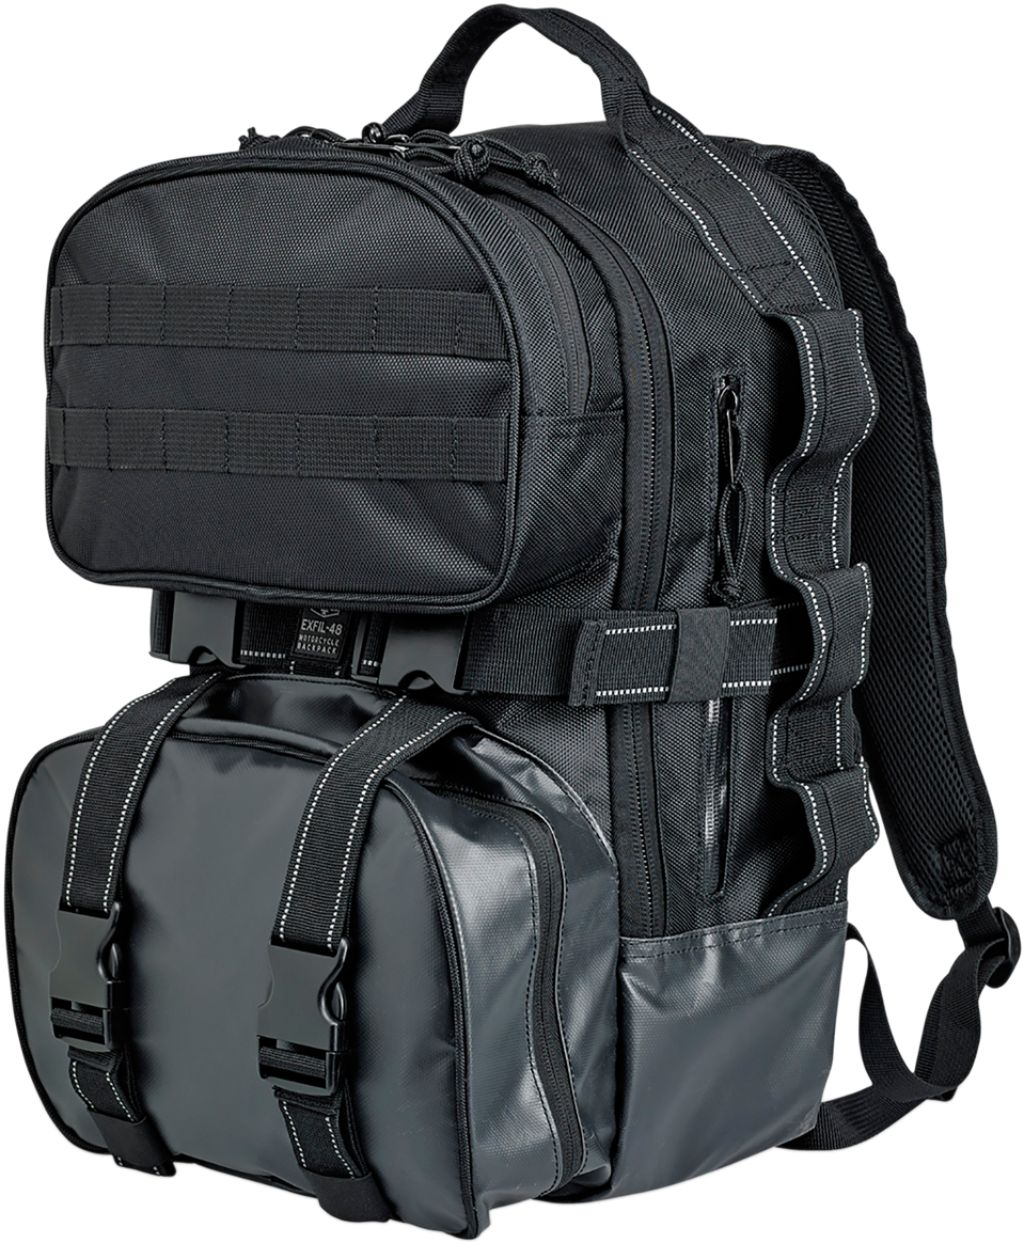 BILTWELL BACKPACK EXFIL 48 BLK Veske [3517-0450]